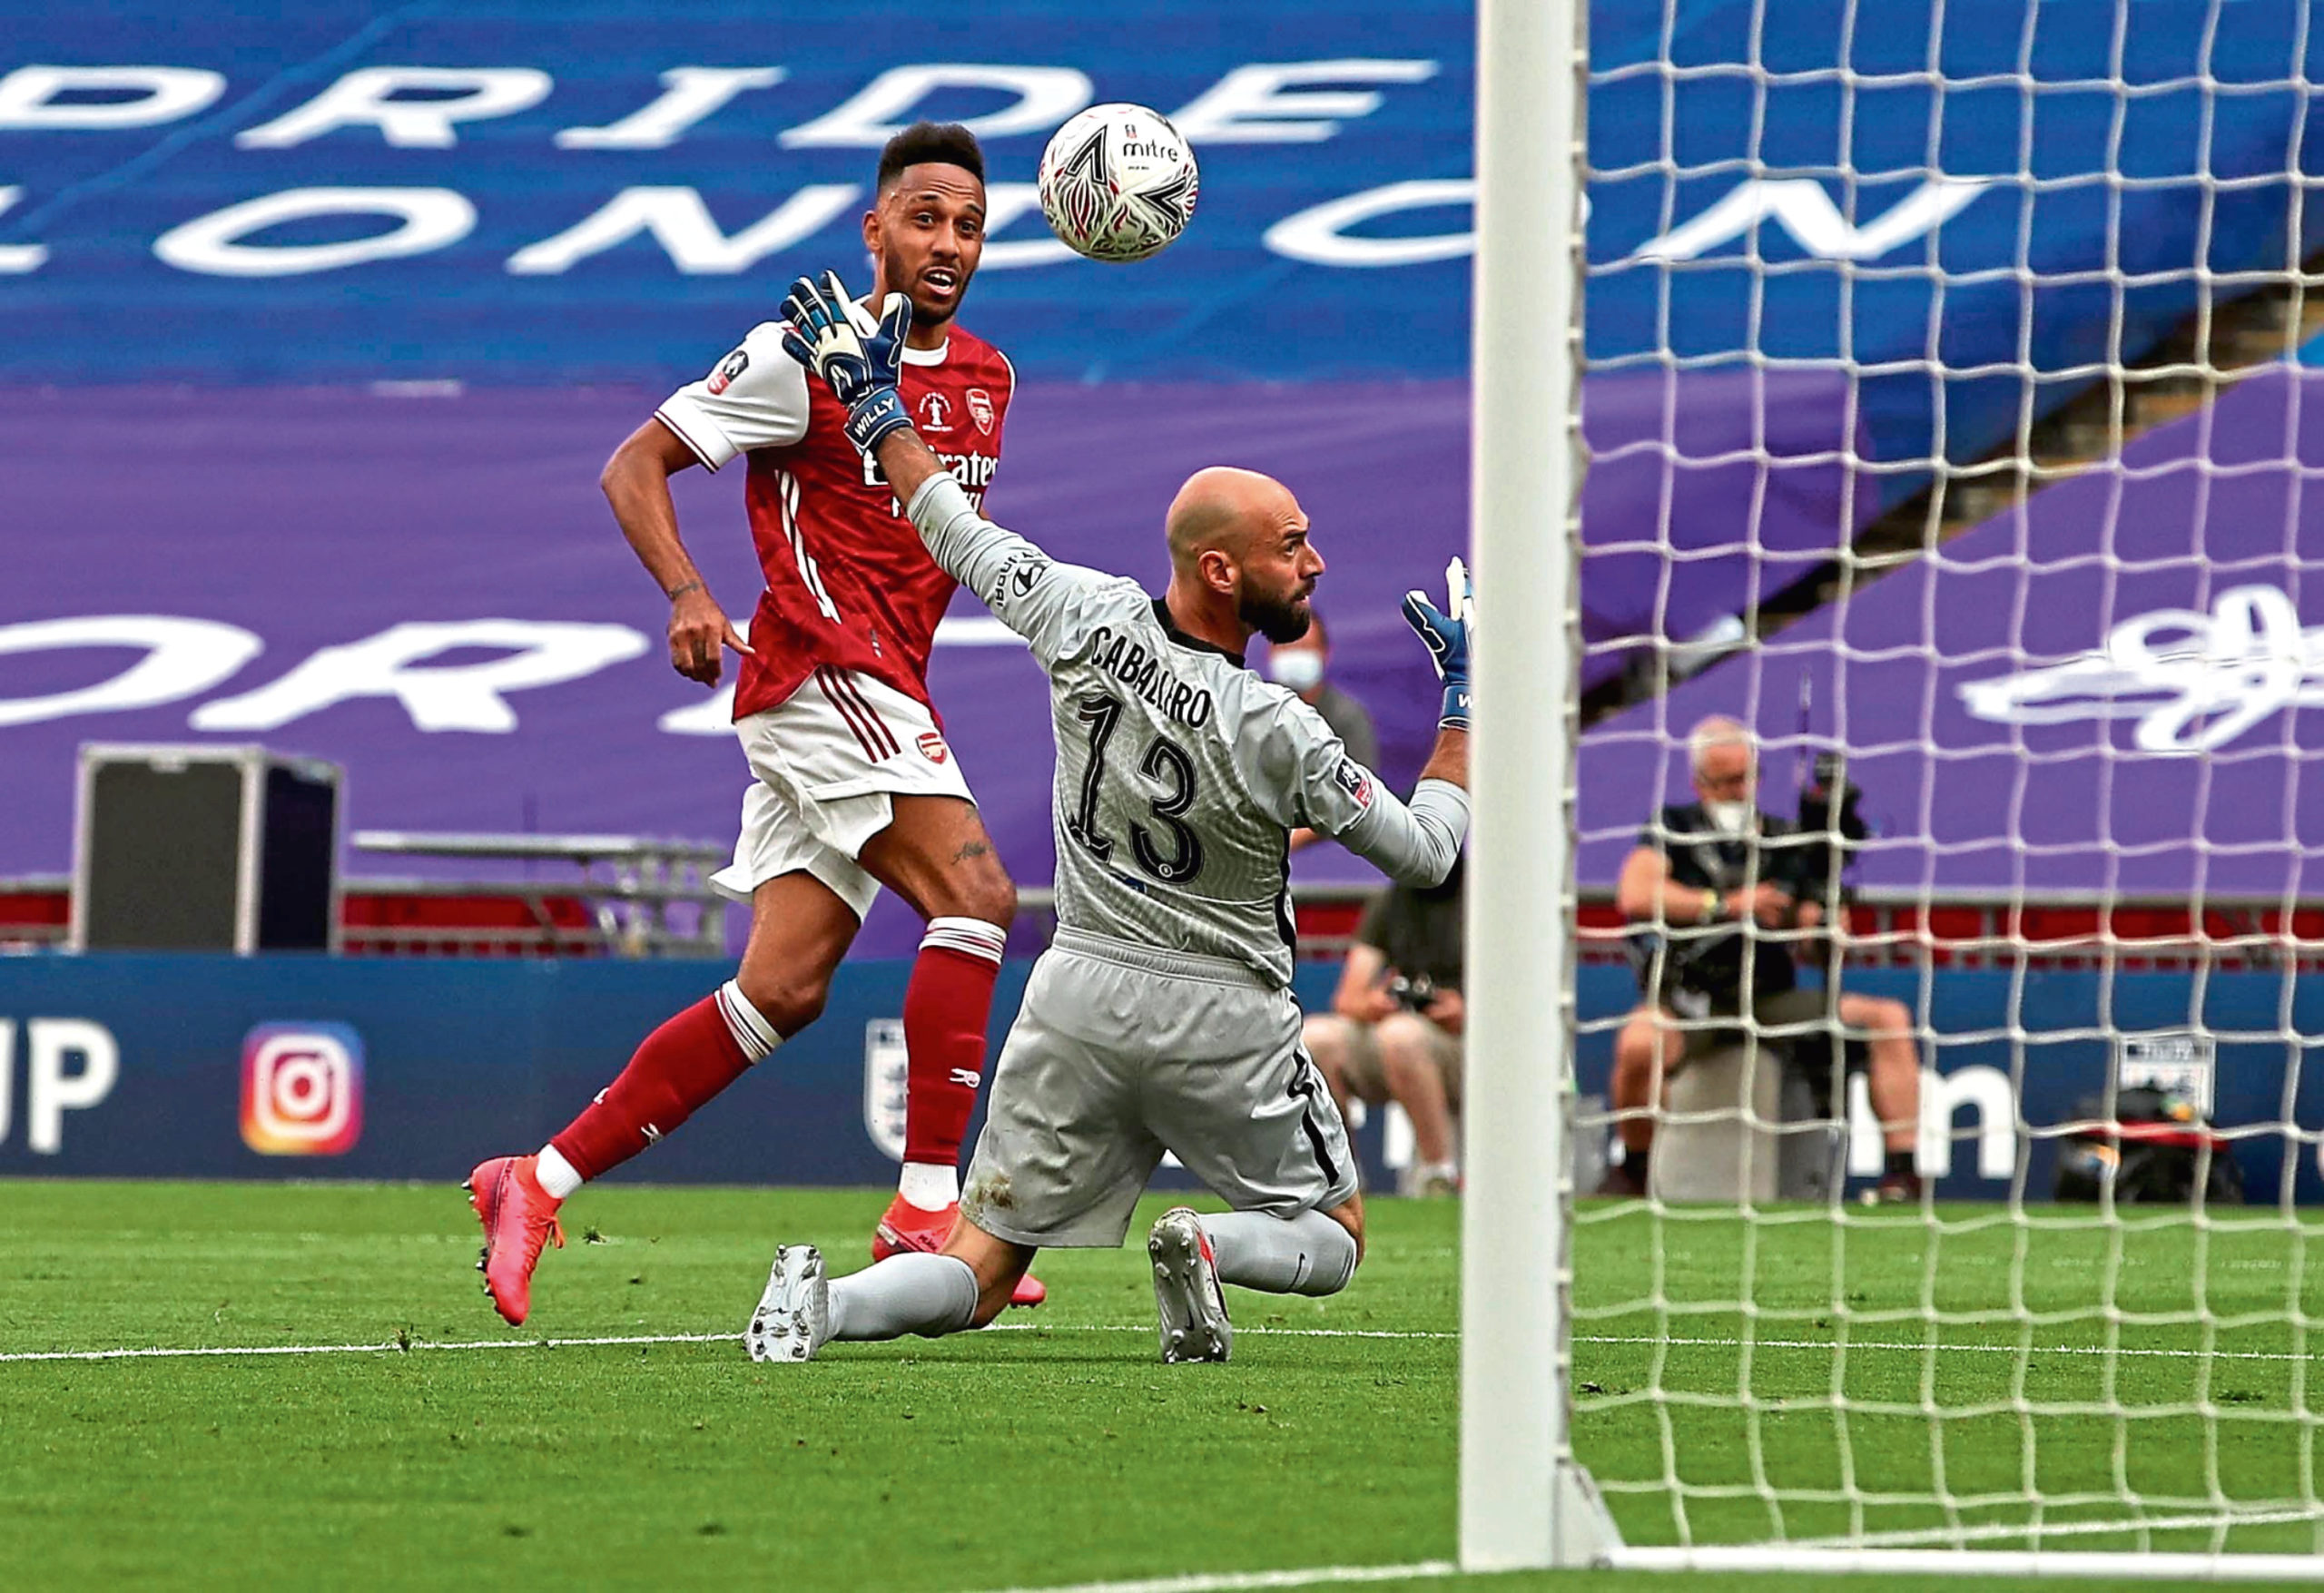 Pierre-Emerick Aubameyang cooly clips the ball over Chelsea keeper Willy Caballero for his second goal of the match